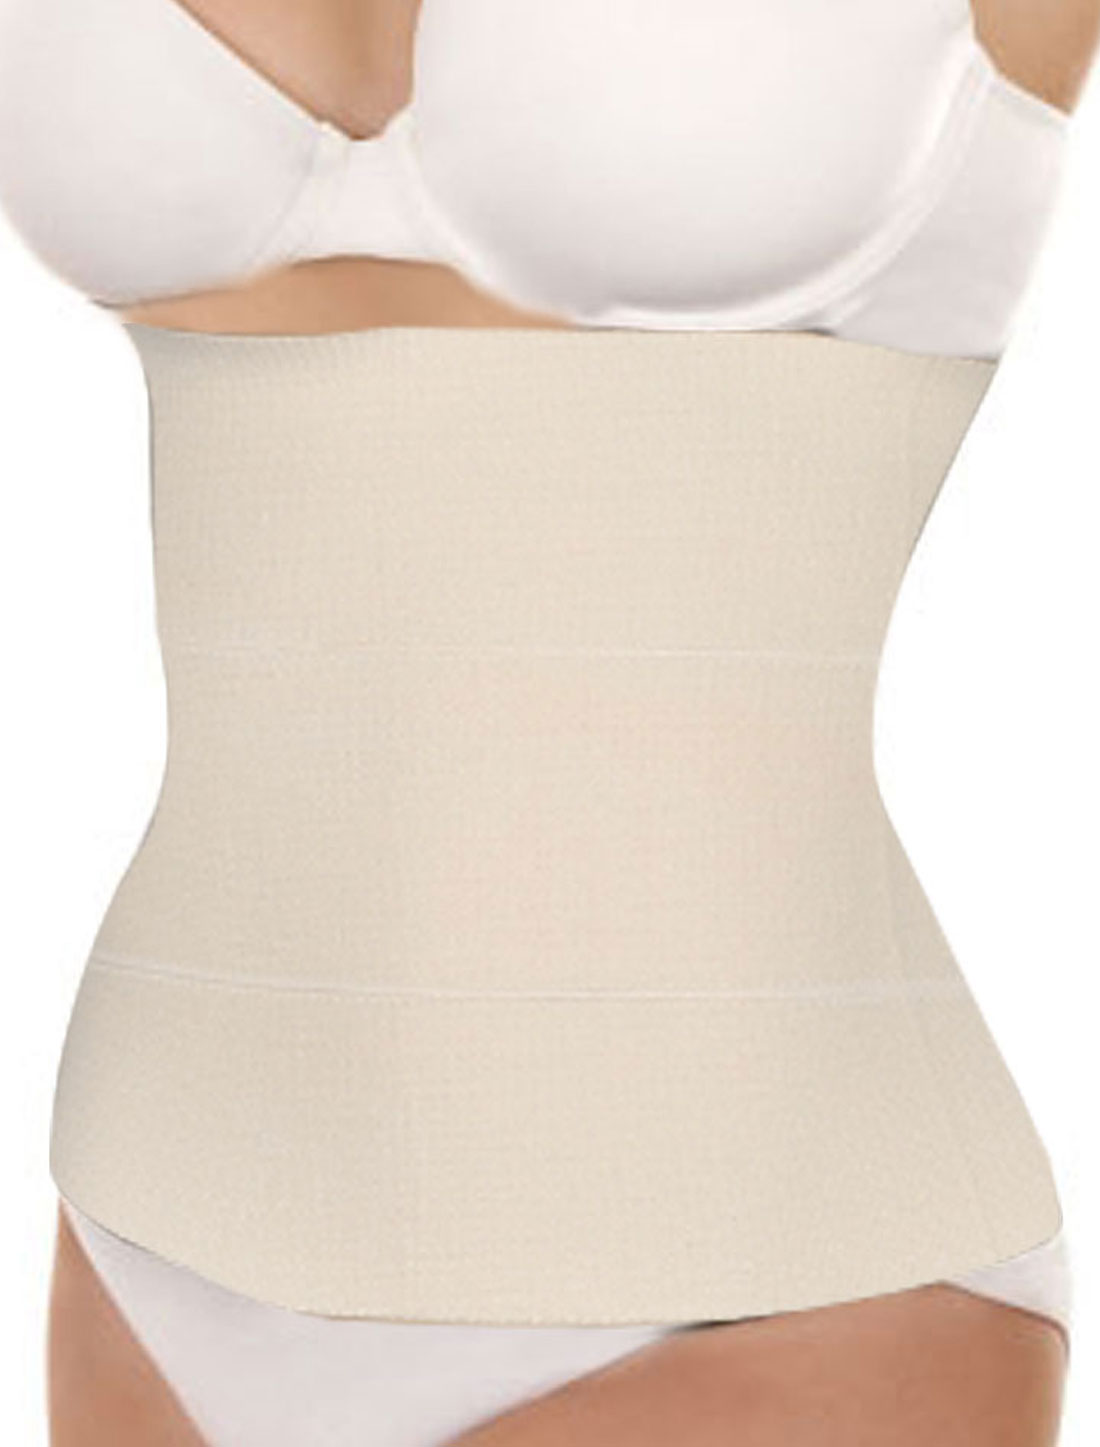 Ladies Elastic Shapewear Tummy Shaper Slimming Belt Waist Cincher Beige M